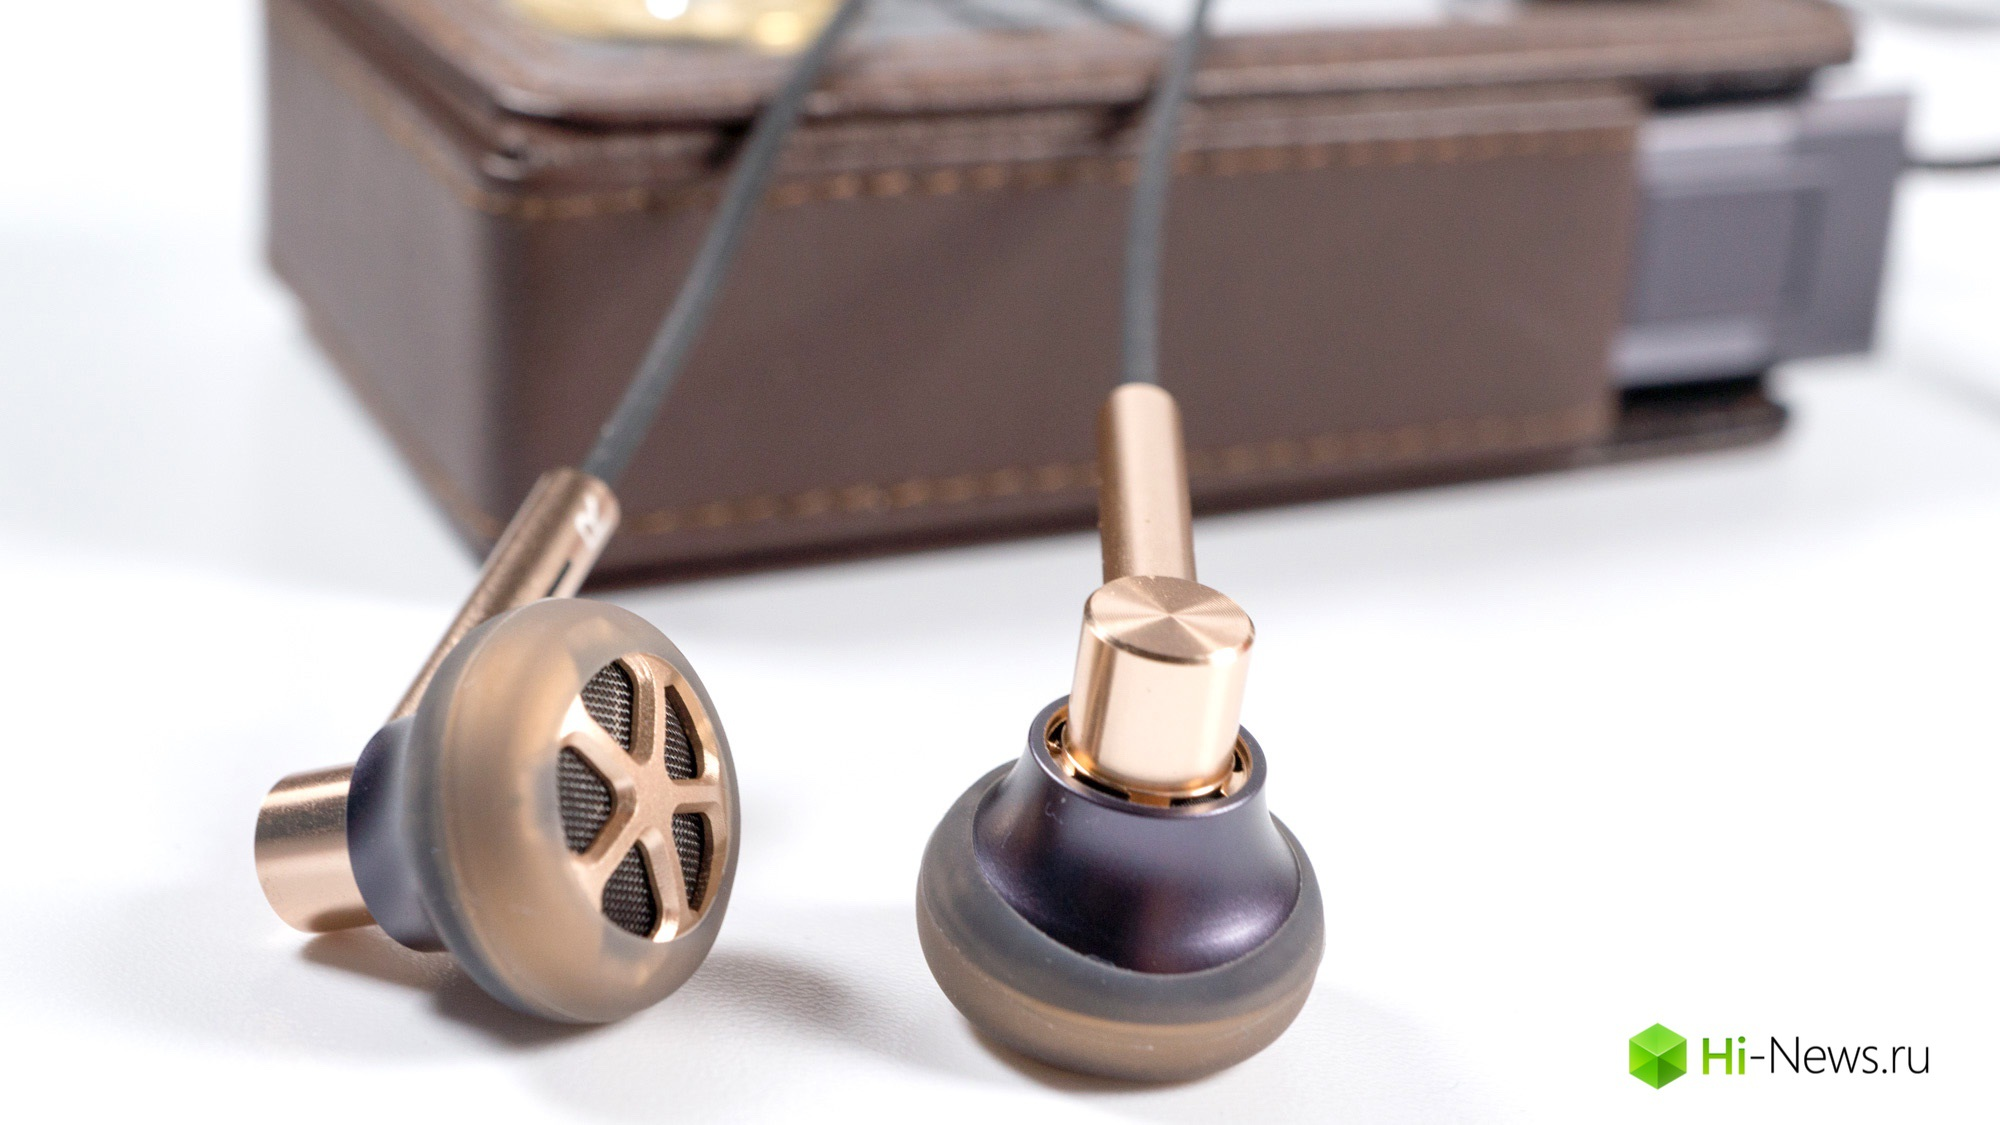 Review headphones 1More E1008 — fans of